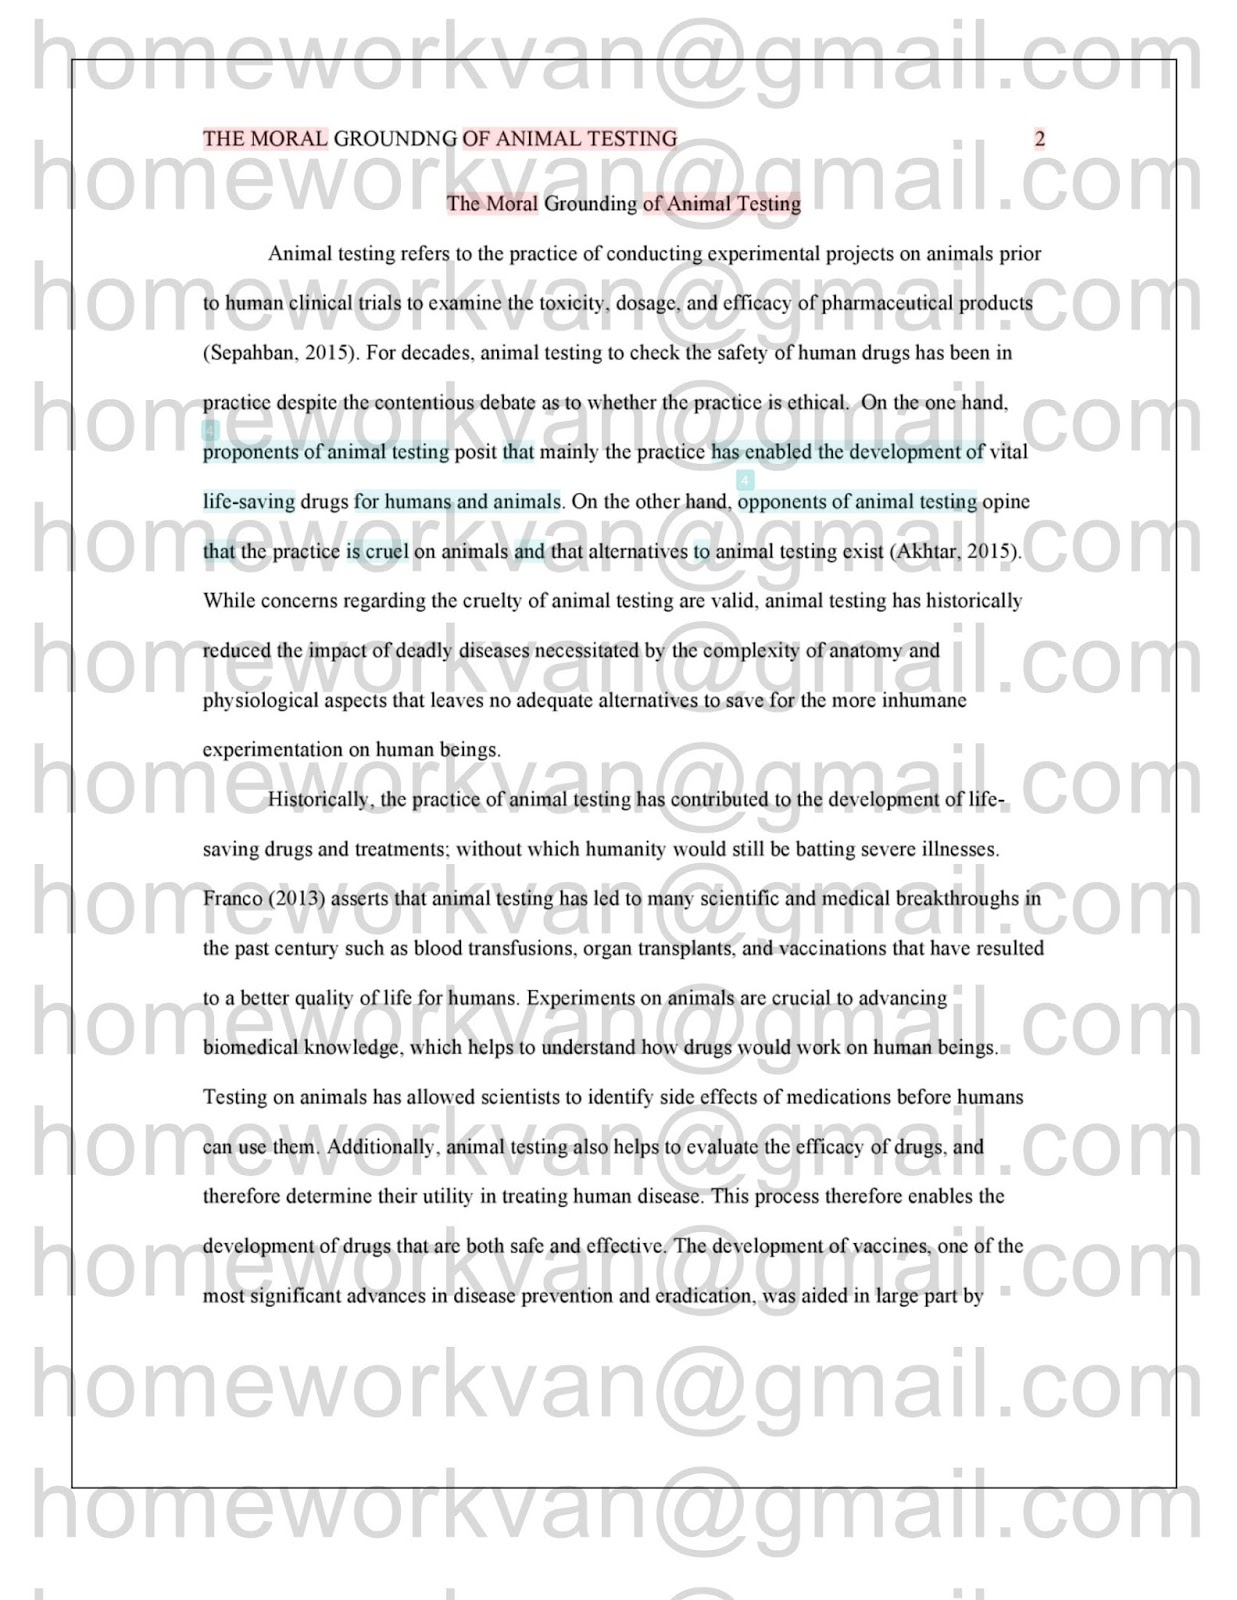 homeworkvan official blog the following is plagiarism report for the moral grounding of animal testing final research essay sample by homeworkvan